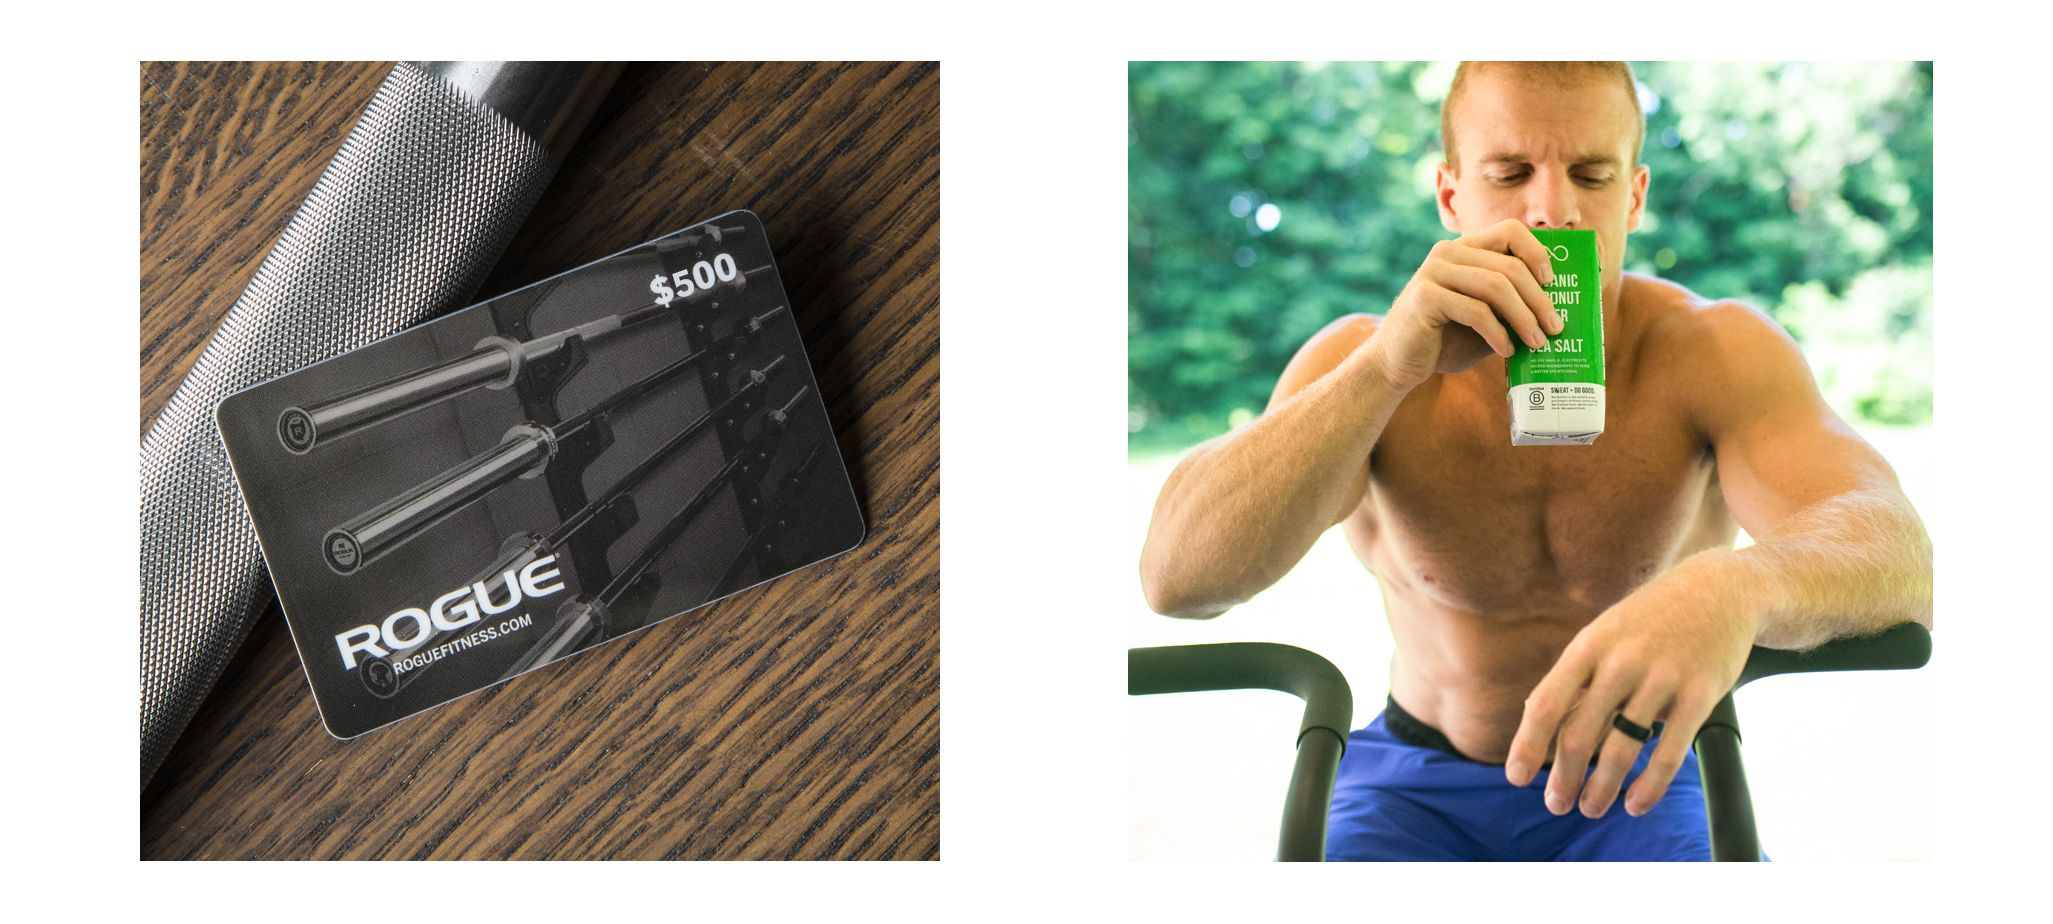 Win A 500 Gift Card To Rogue Fitness Rogue Fitness Contest Viral